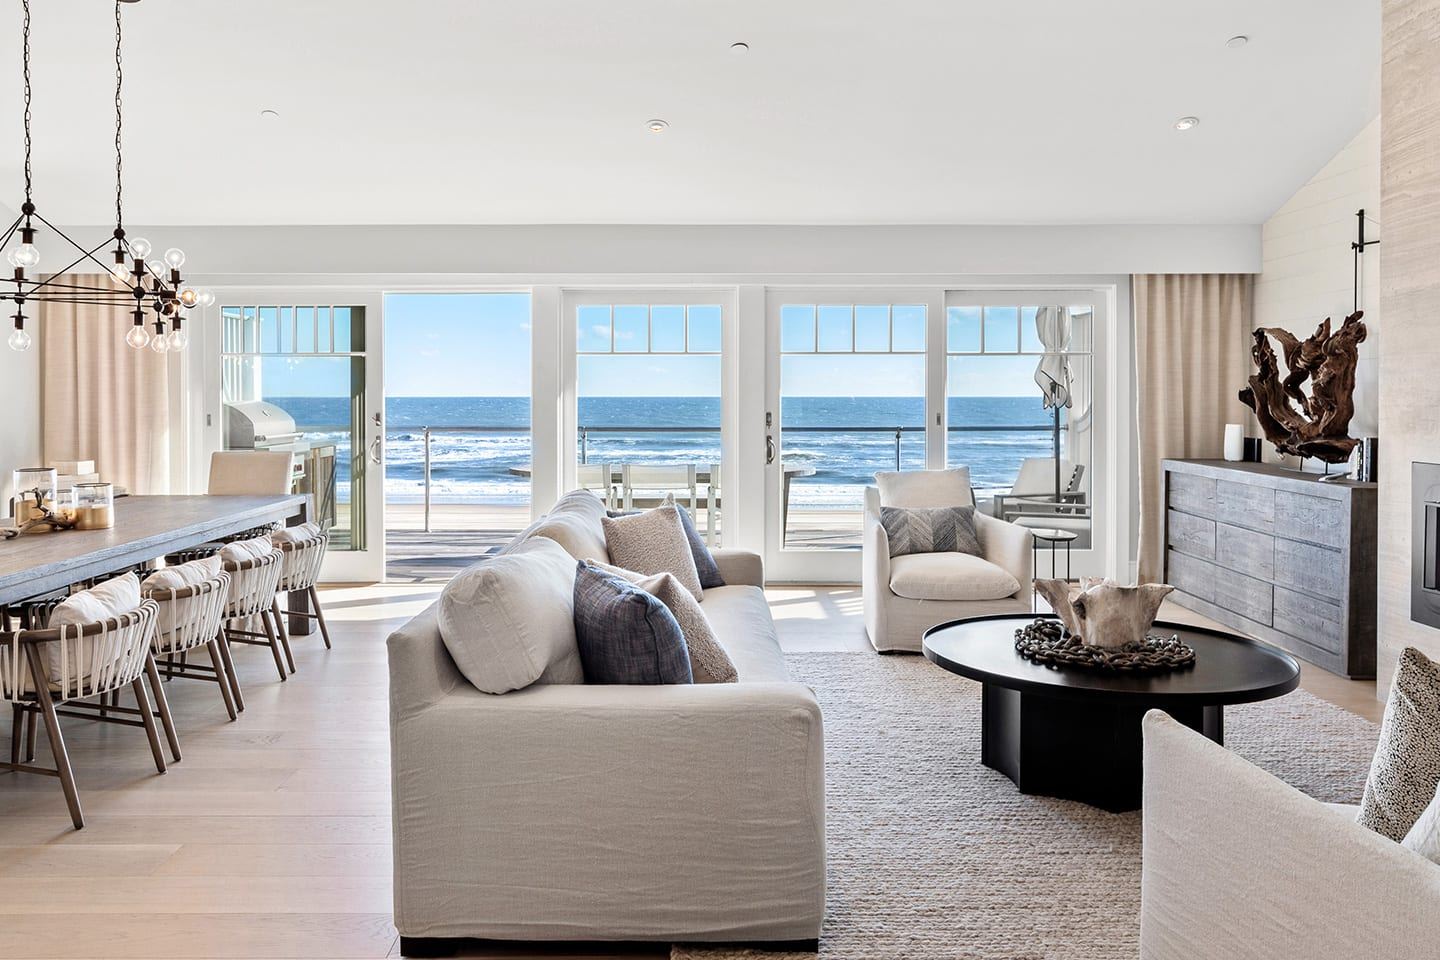 Salt Sea 5 Living room and dining room with a deck overlooking the ocean